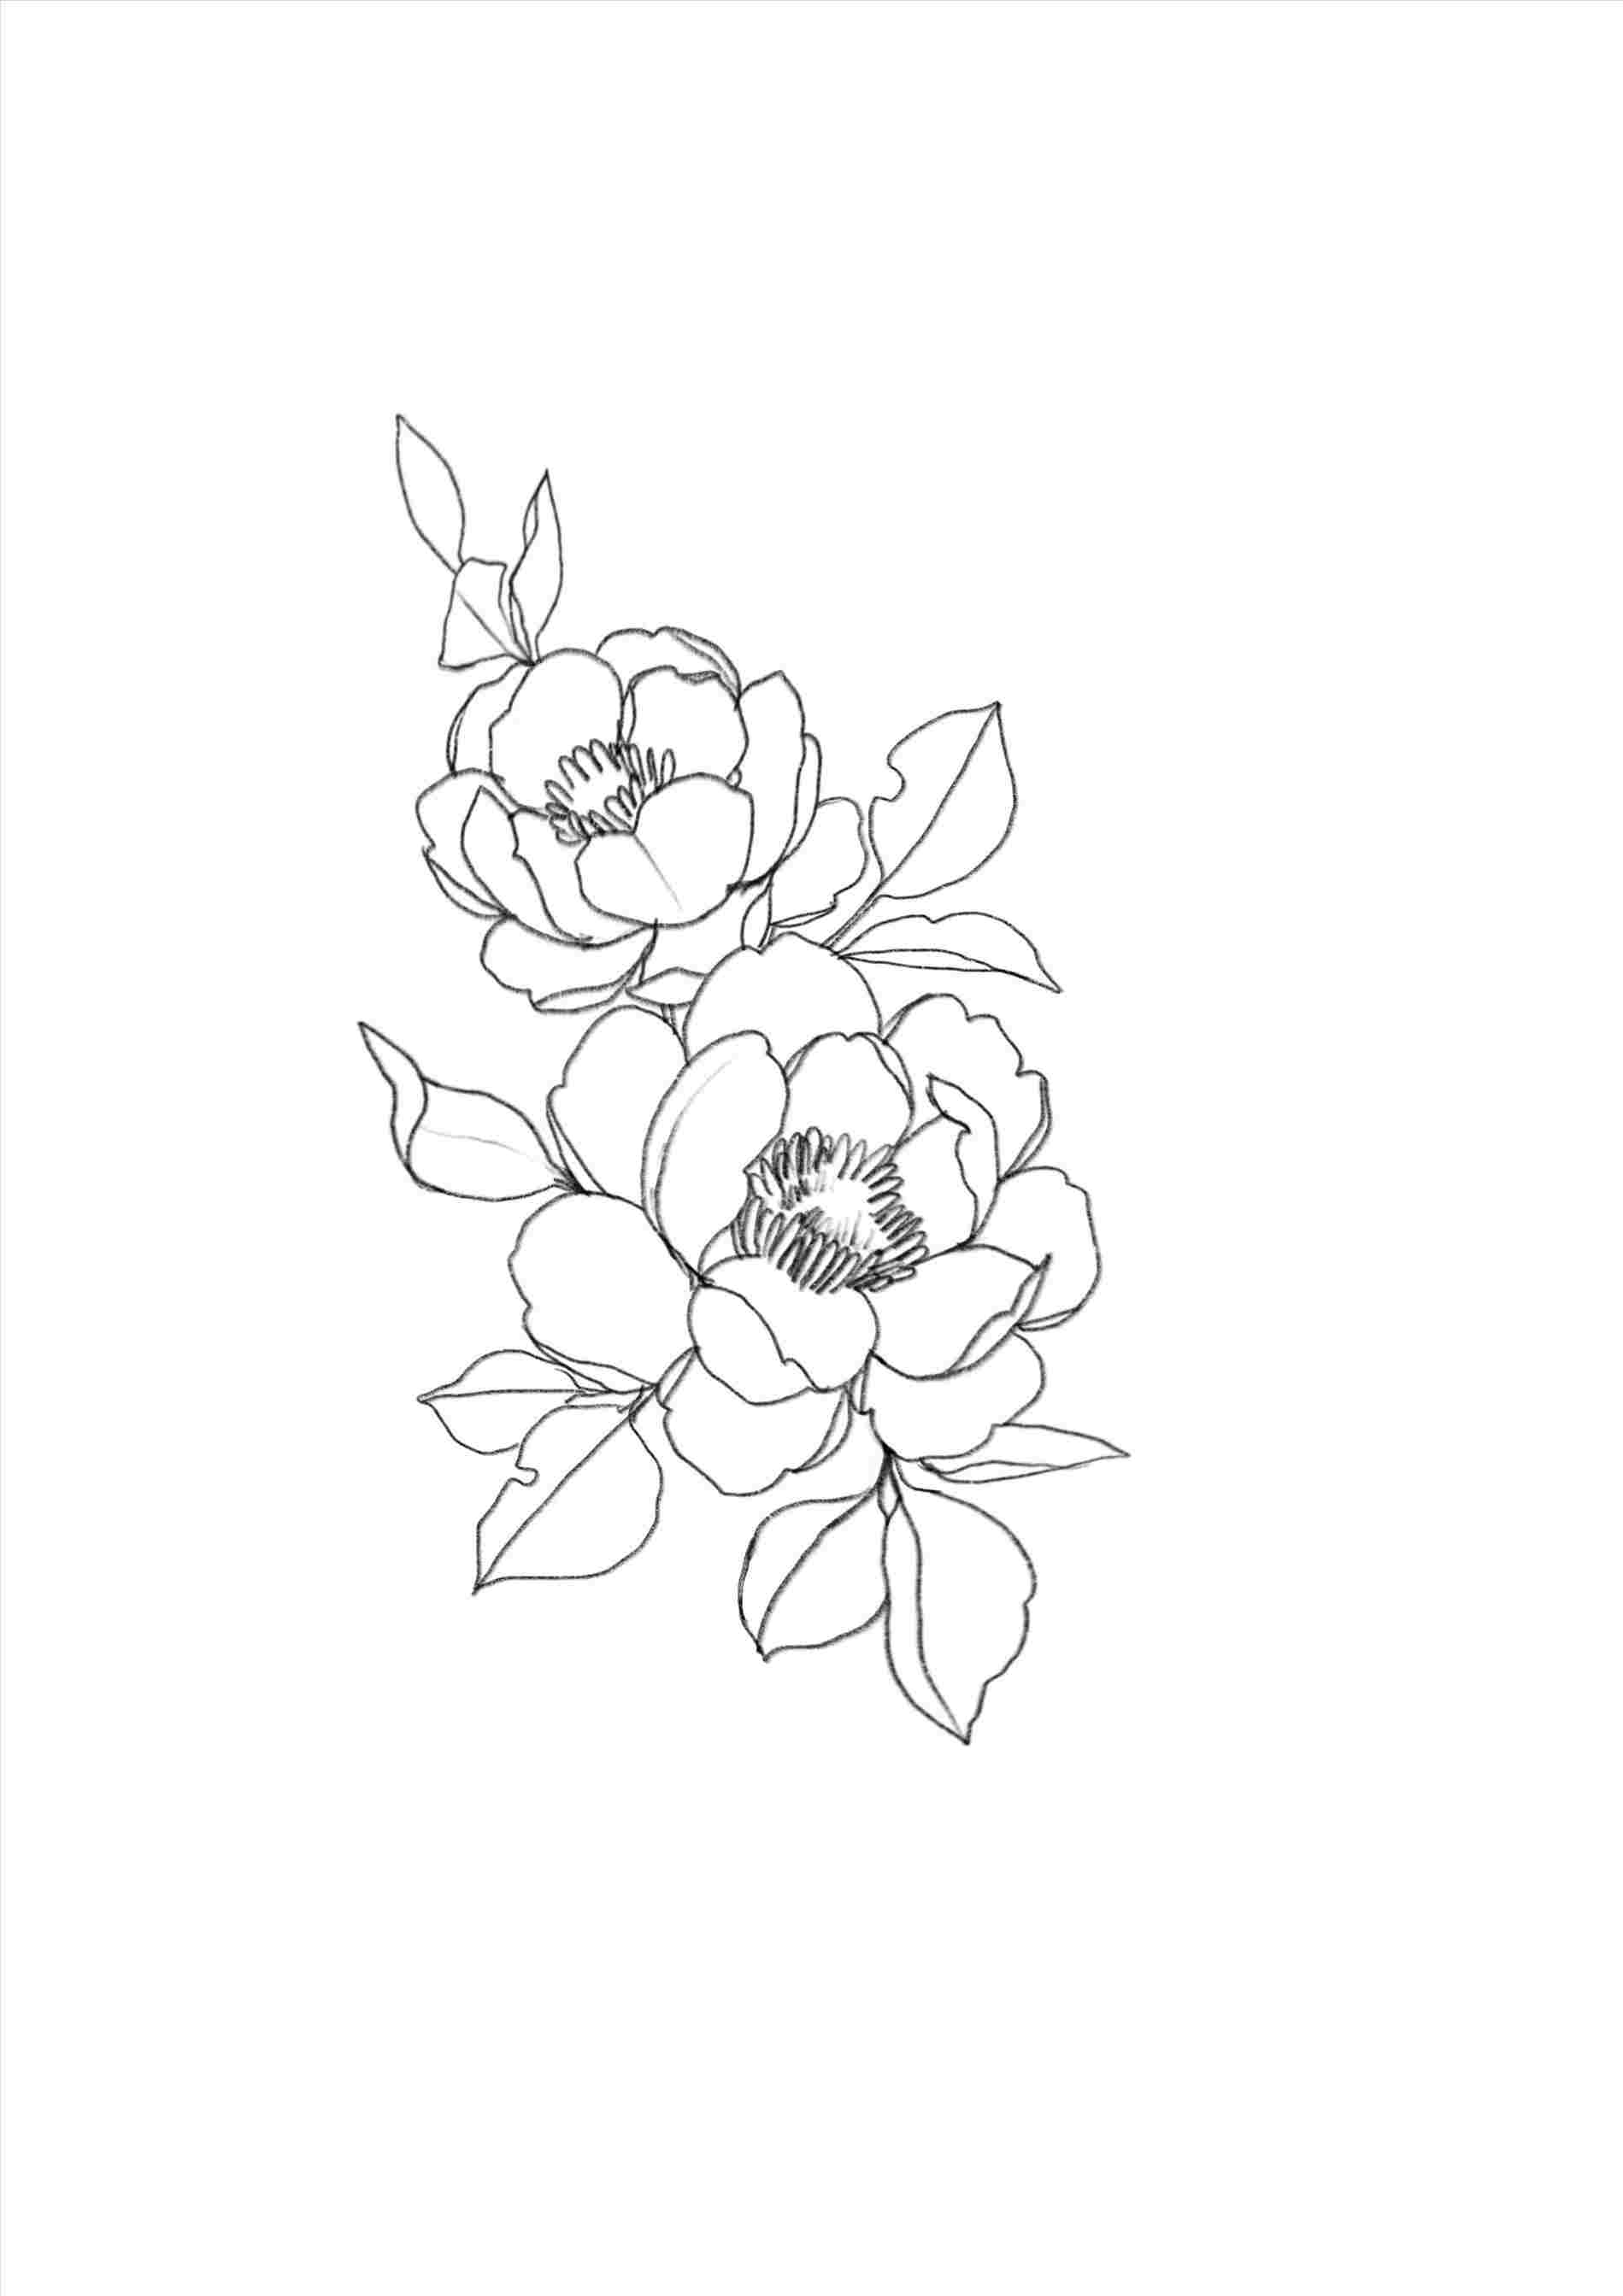 Aesthetic drawing . Rose clipart minimalist